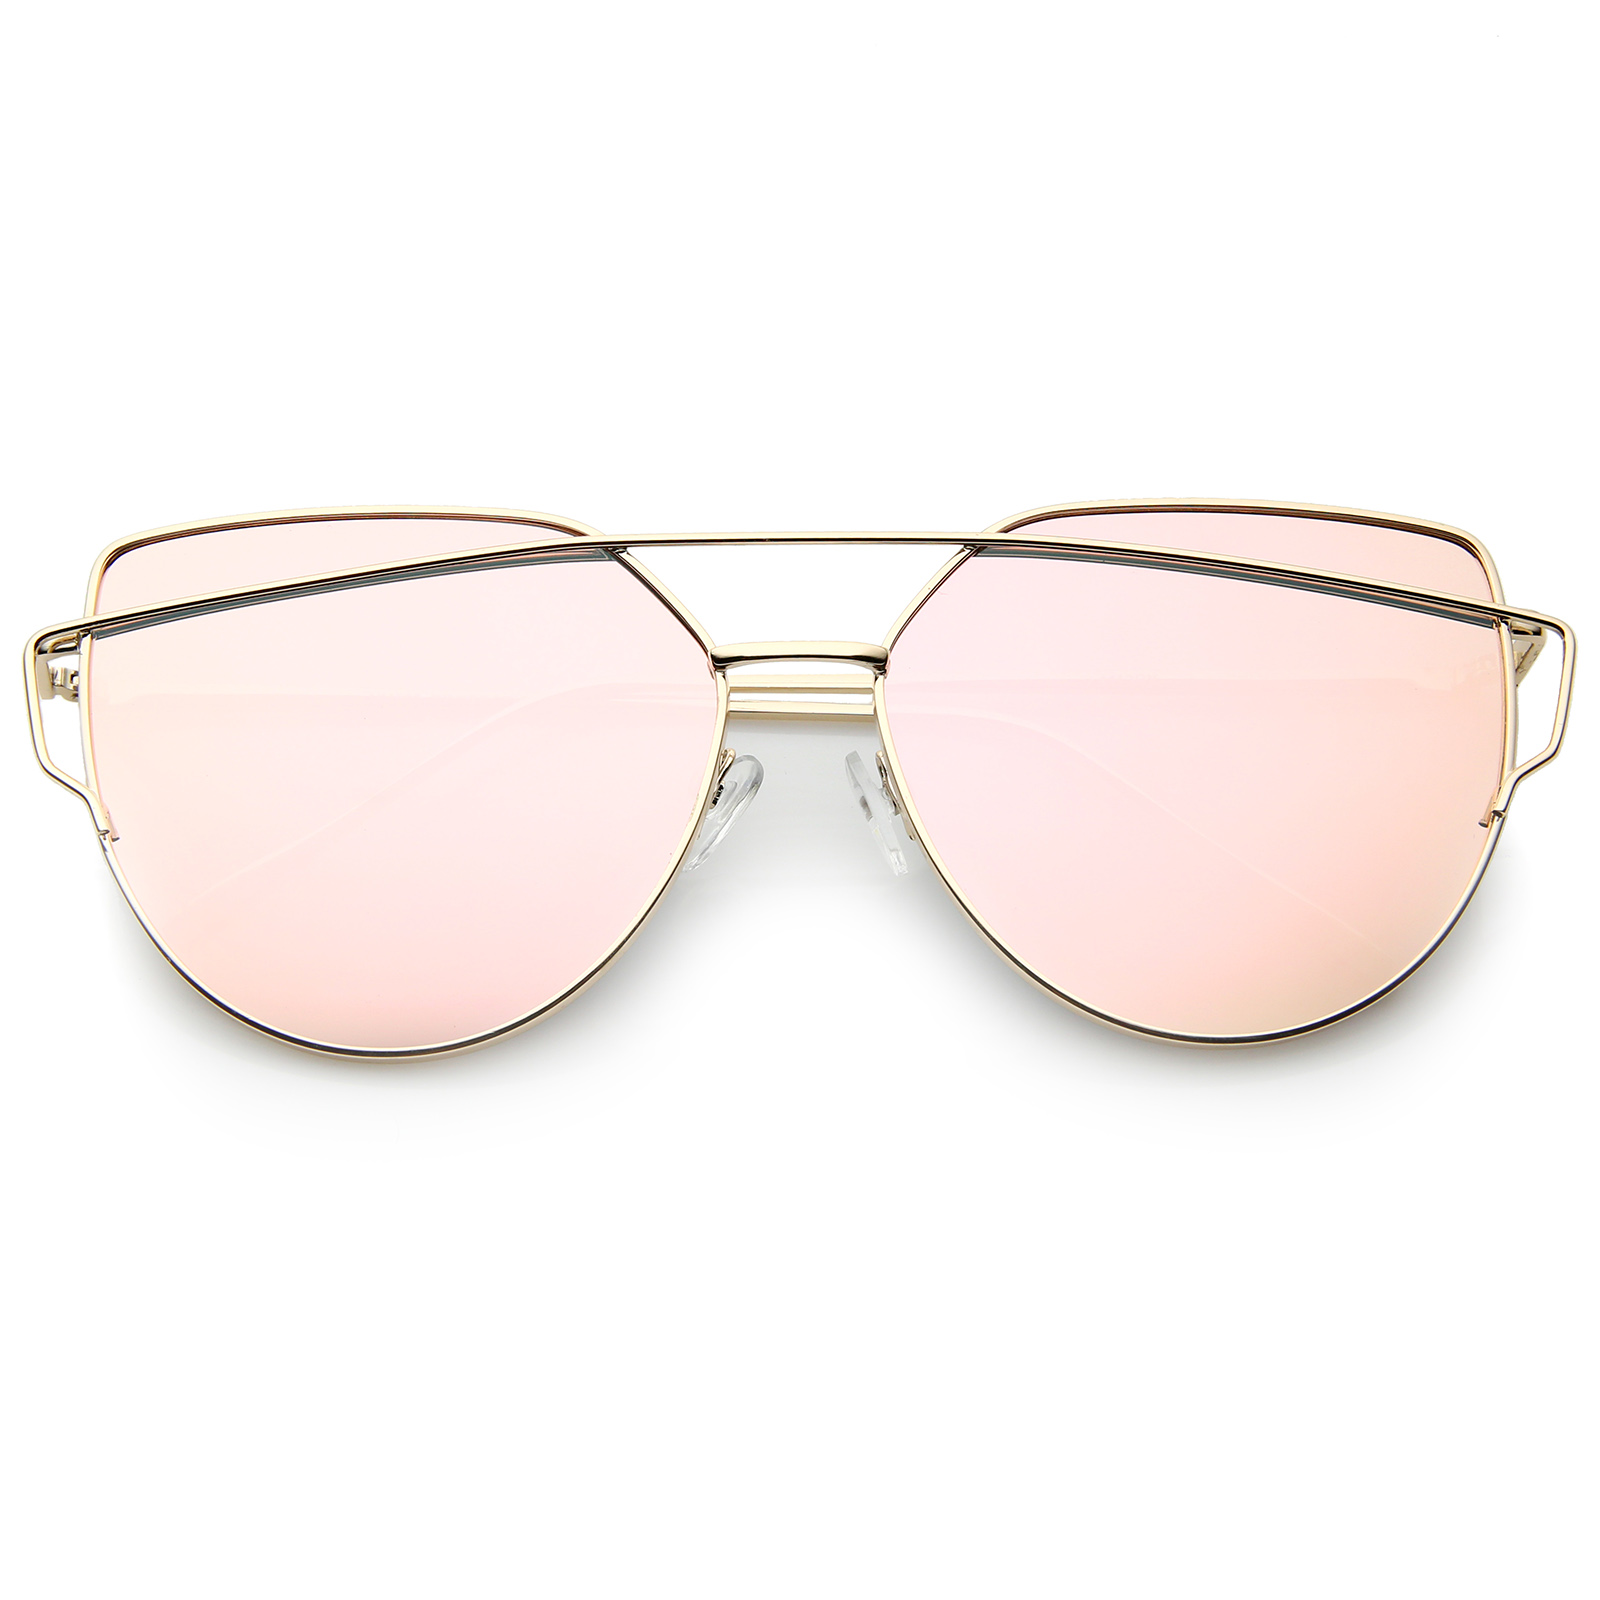 sunglassLA Oversized Metal Thin Temple Color Mirror Flat Lens Aviator Sunglasses